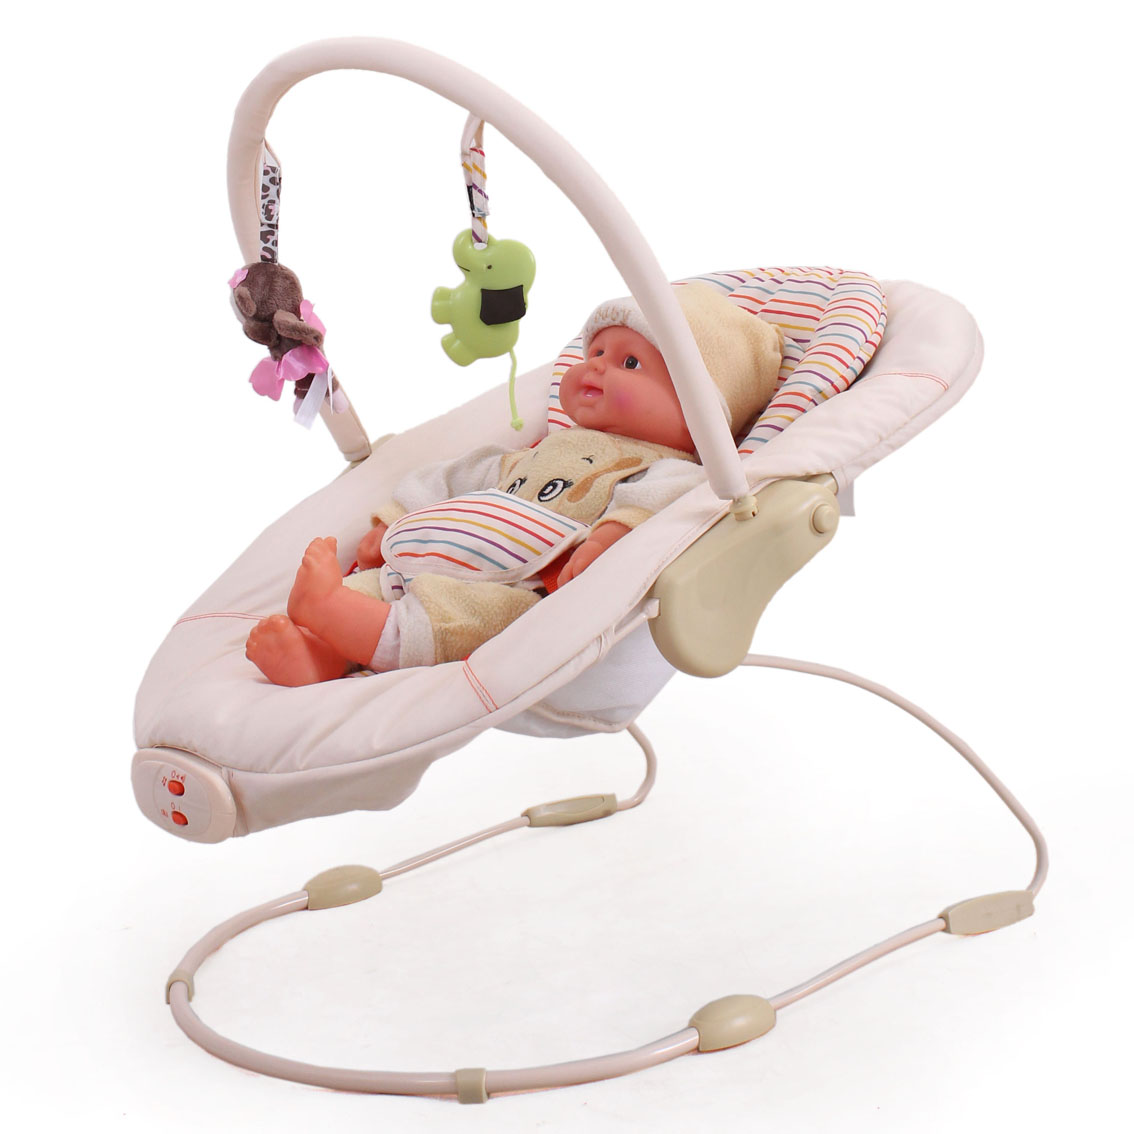 Popular vibrating baby bouncer aliexpress for Baby chaise lounge